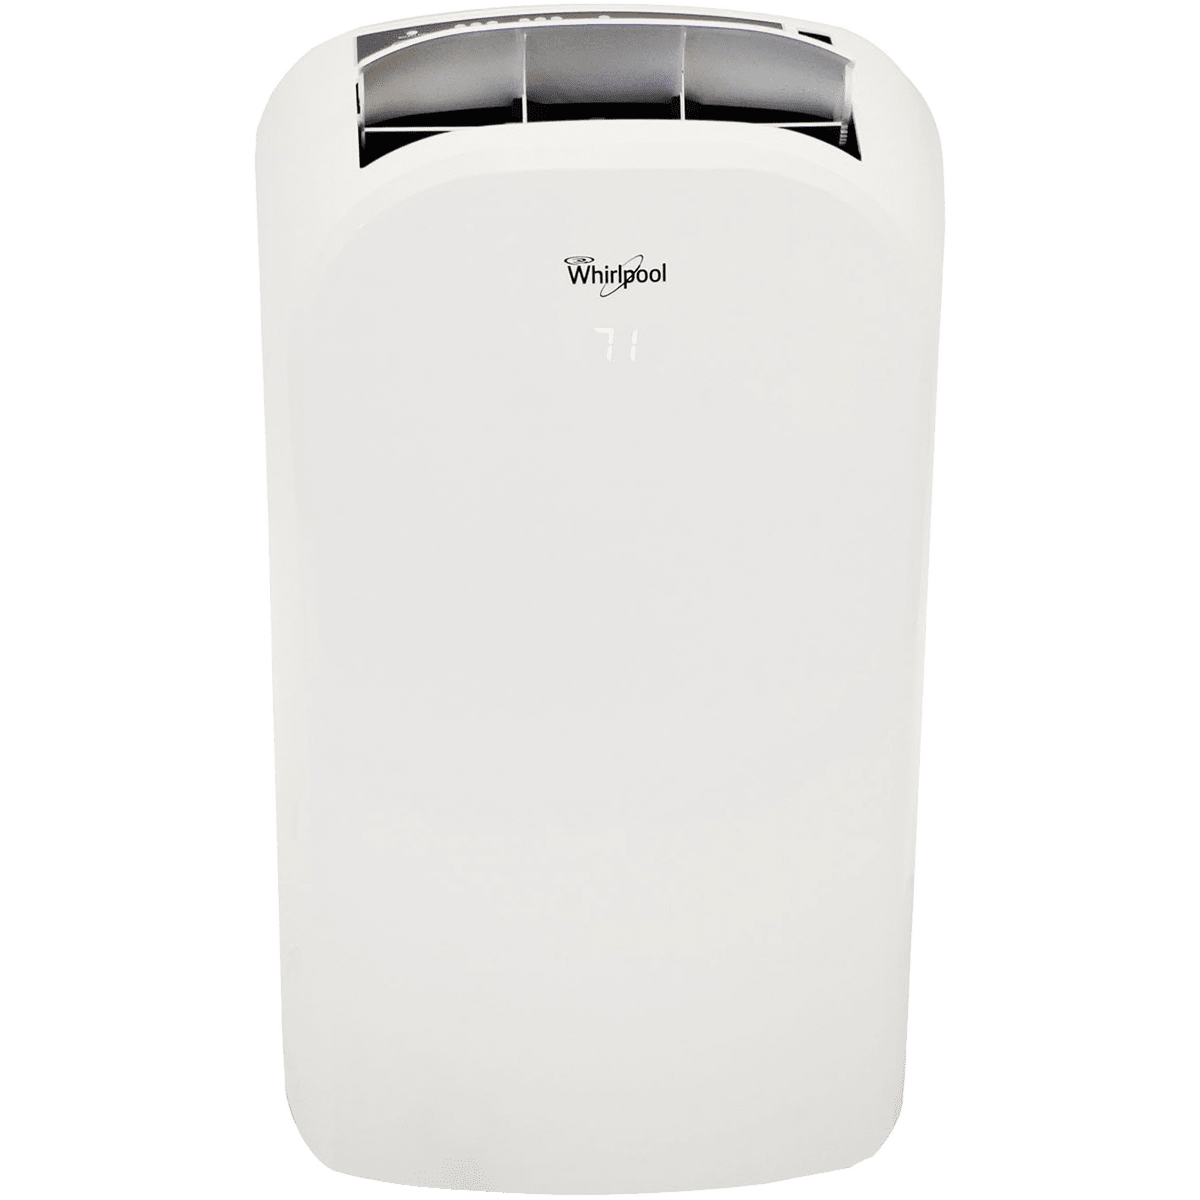 Whirlpool Portable Air Conditioner w/ Dual Hose Exhaust